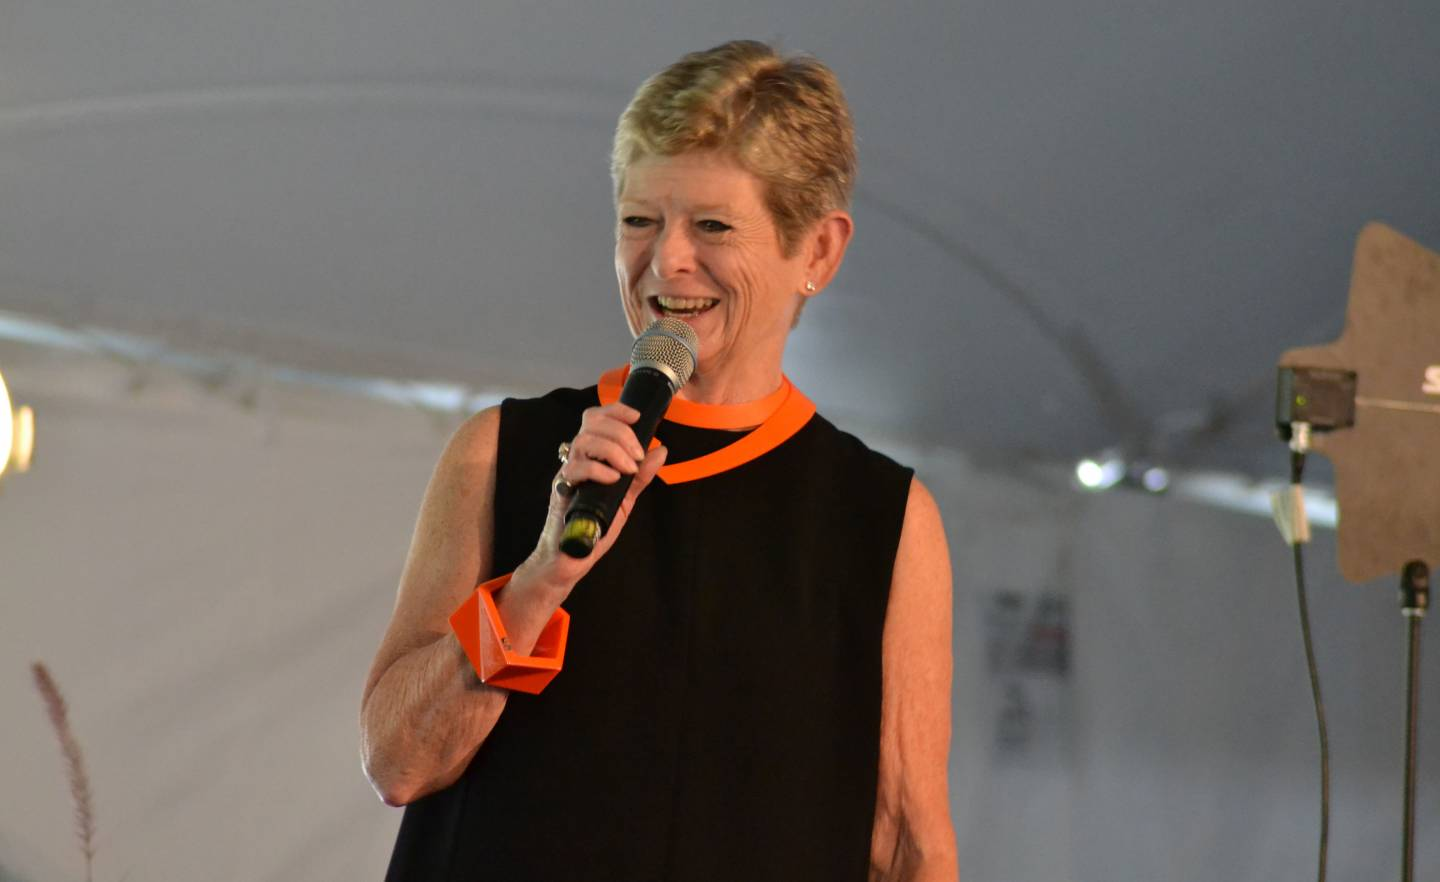 Georgia Nugent speaking to She Roars audience